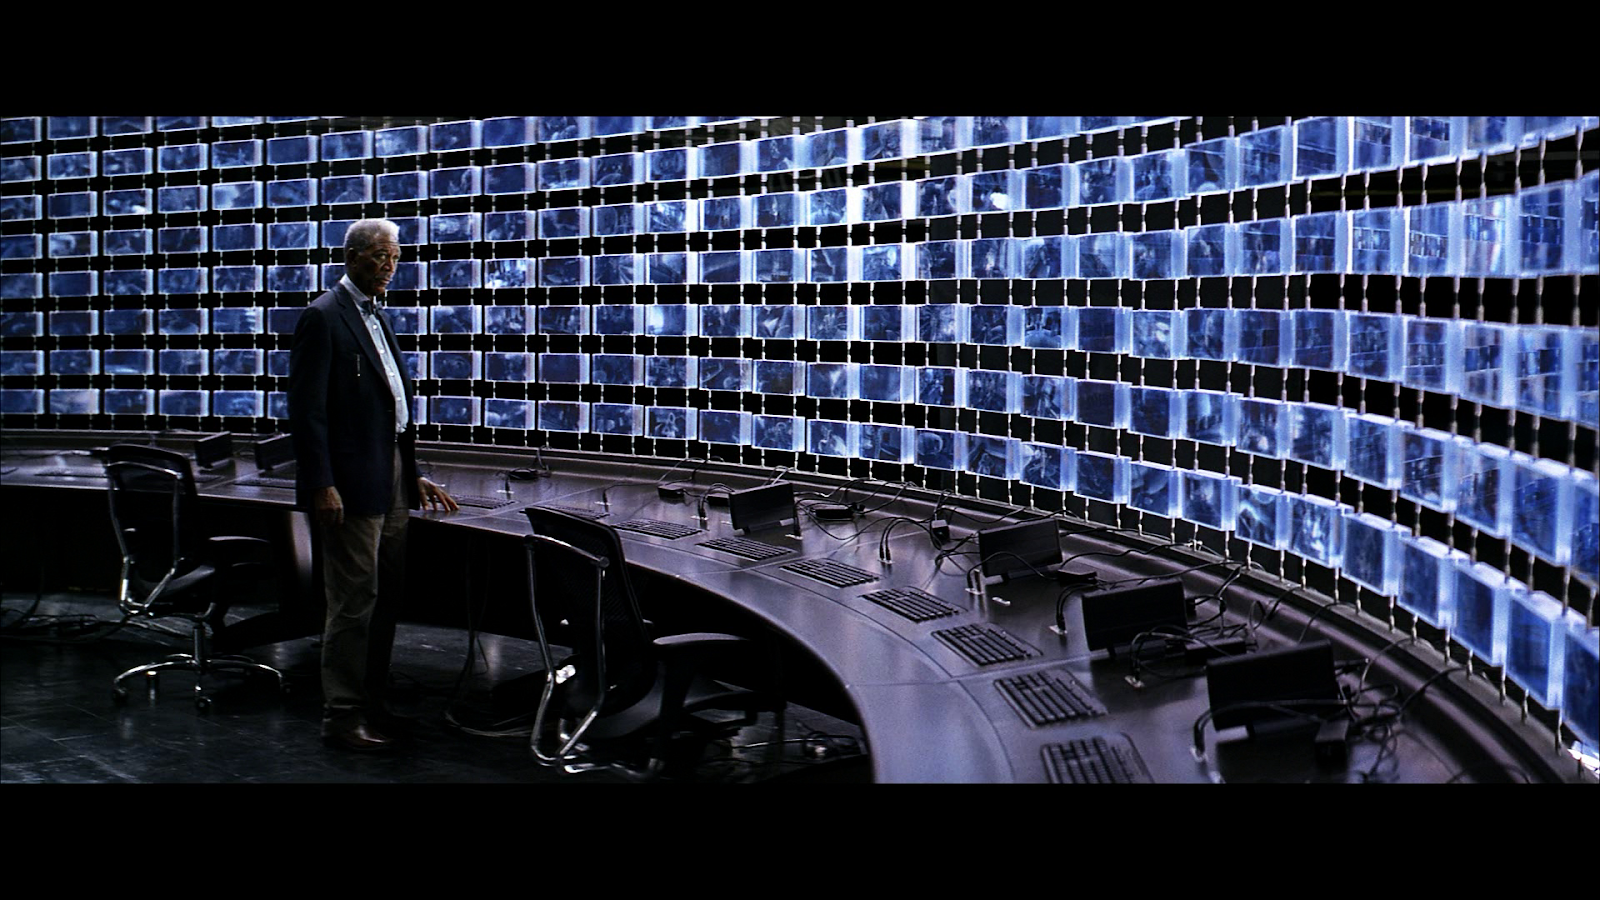 Lucius Fox staring at hundreds of screens that make up a single image